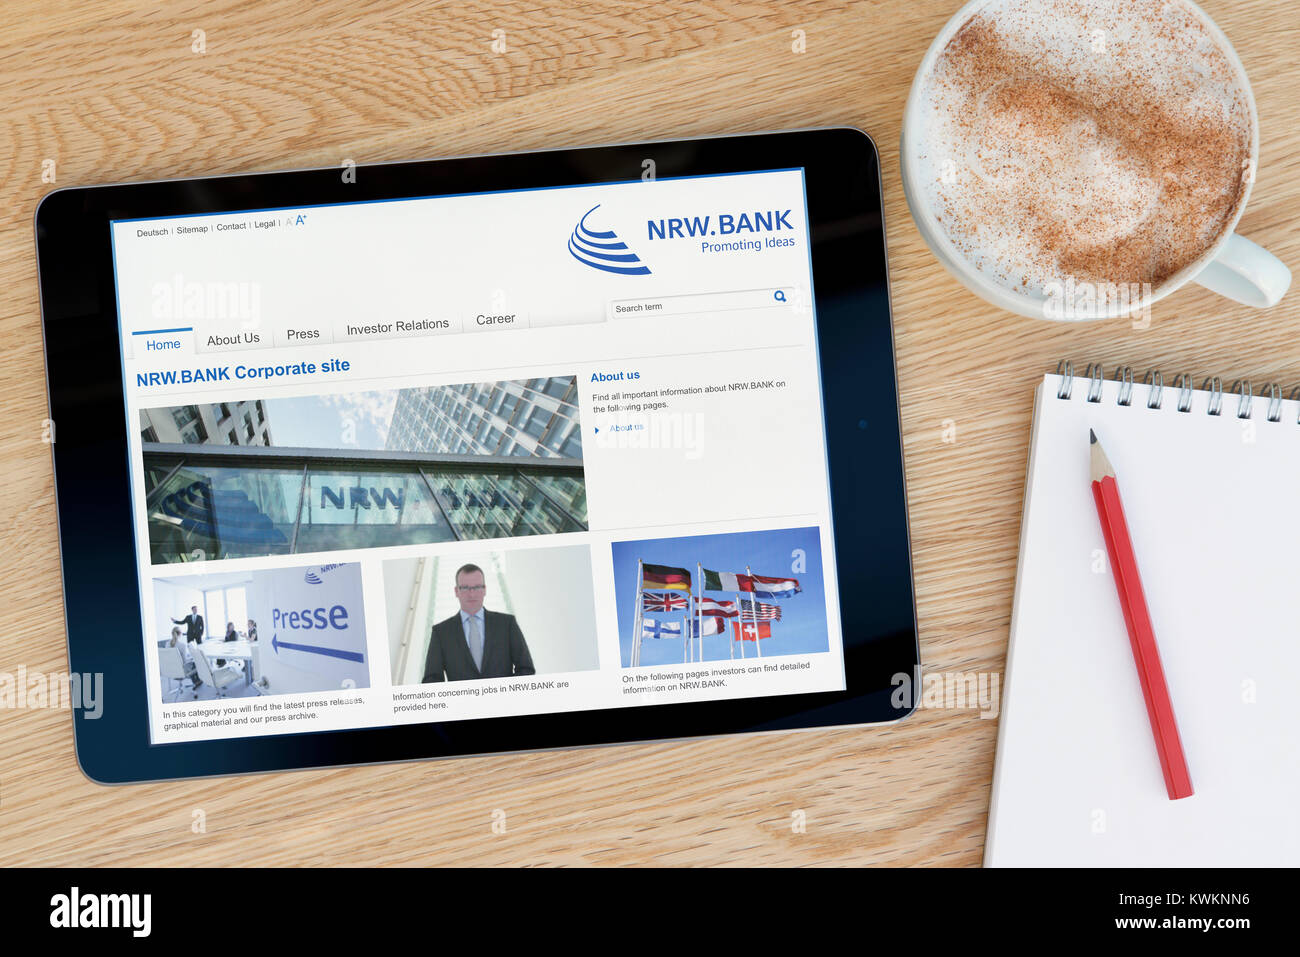 The NRW.BANK website on an iPad tablet device, resting on a wooden table beside a notepad, pencil and cup of coffee - Stock Image